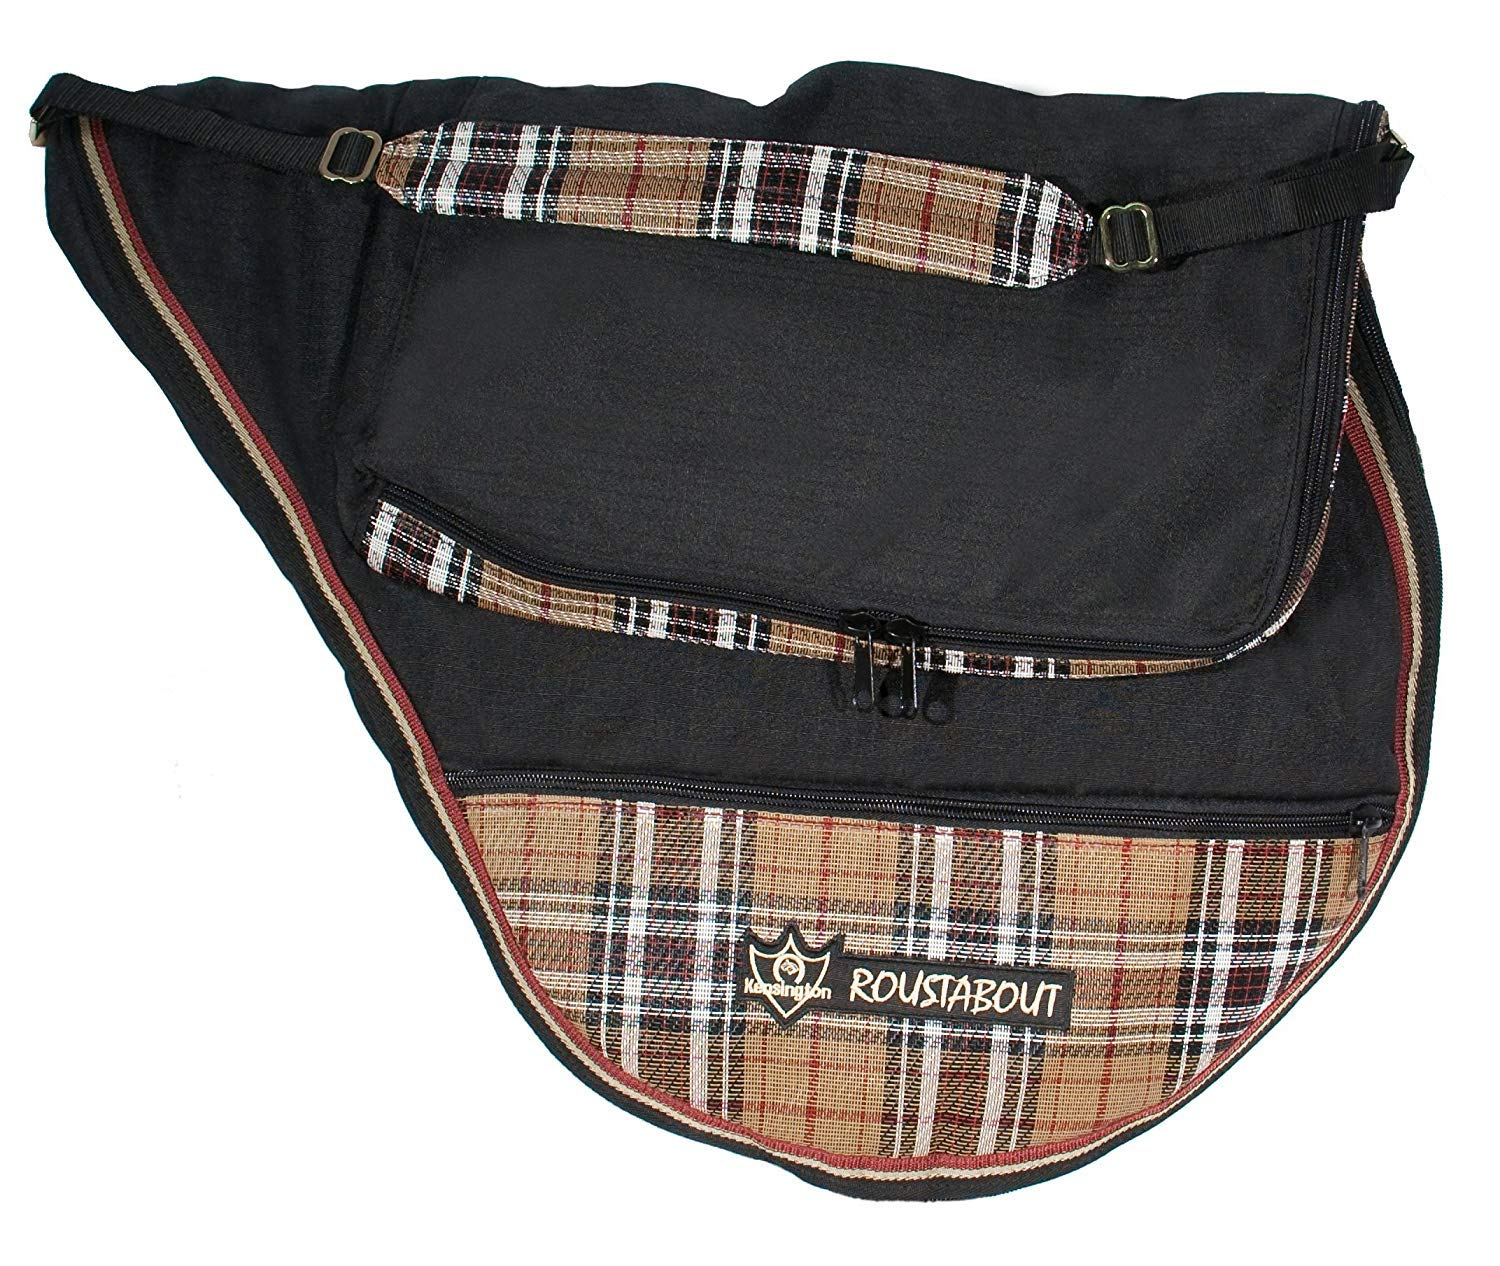 Kensington All Purpose Saddle Carrying Bag - Waterproof Outer Shell - Features Top Pad Storage Compartment - Padded Shoulder Pad for Carrying Comfort